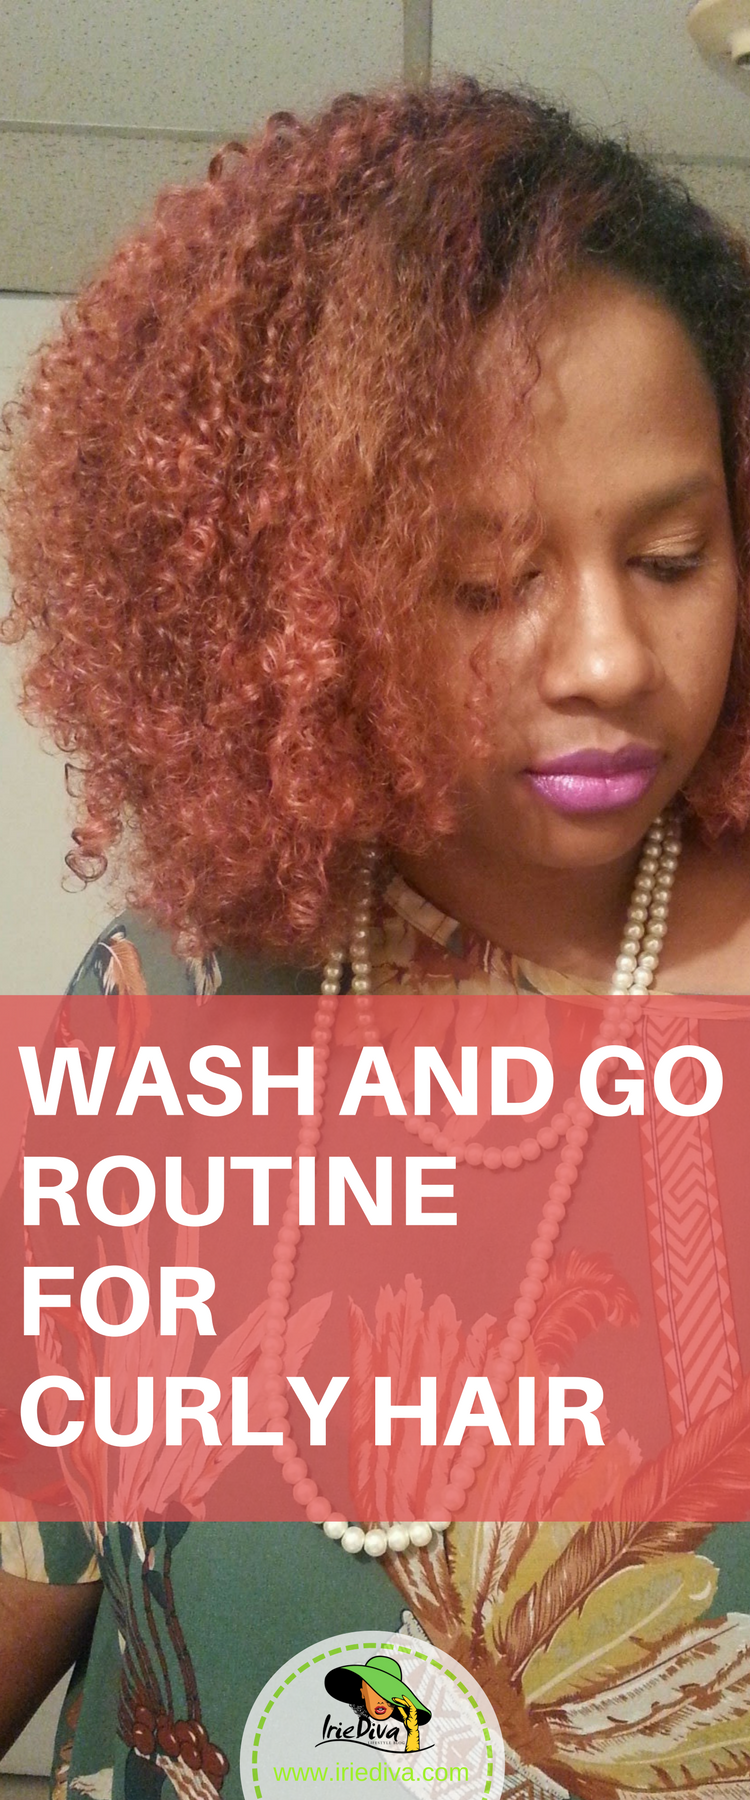 Wash and go routine for soft, bouncy, shiny, natural hair curls.